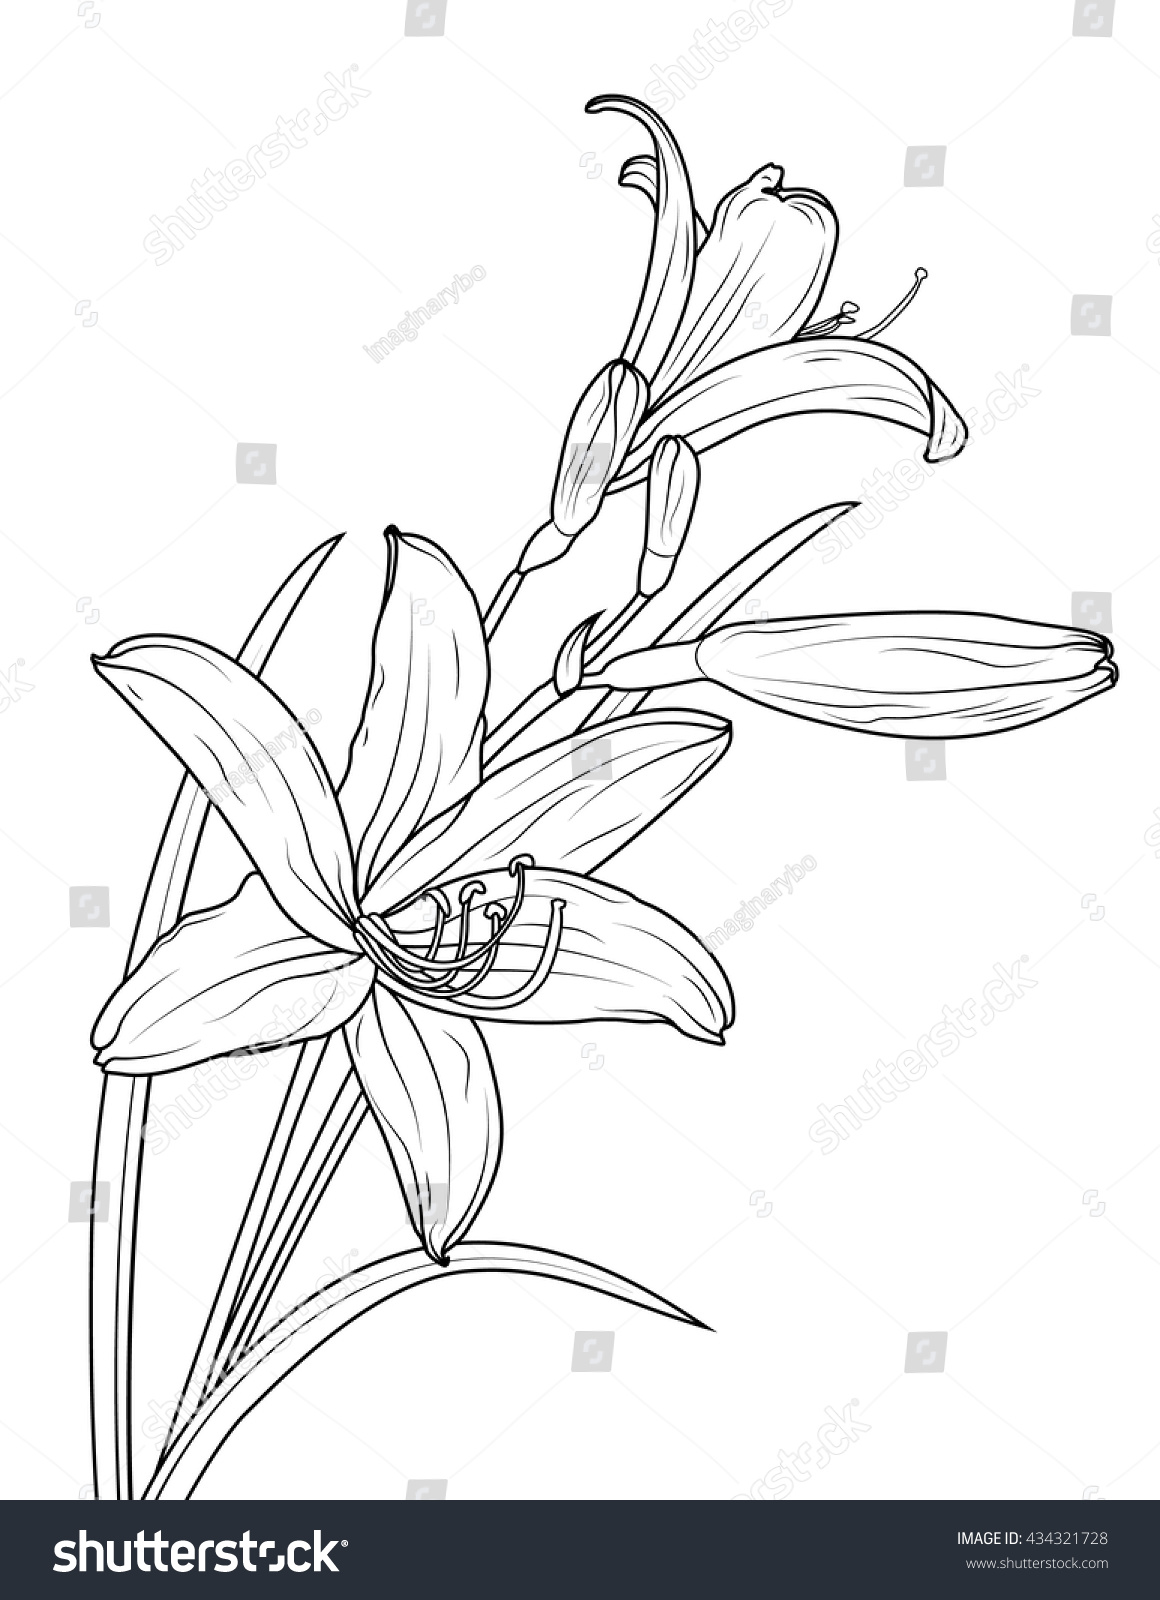 Isolated Elegant White Lily Flowers With Stem And Leaves Vector